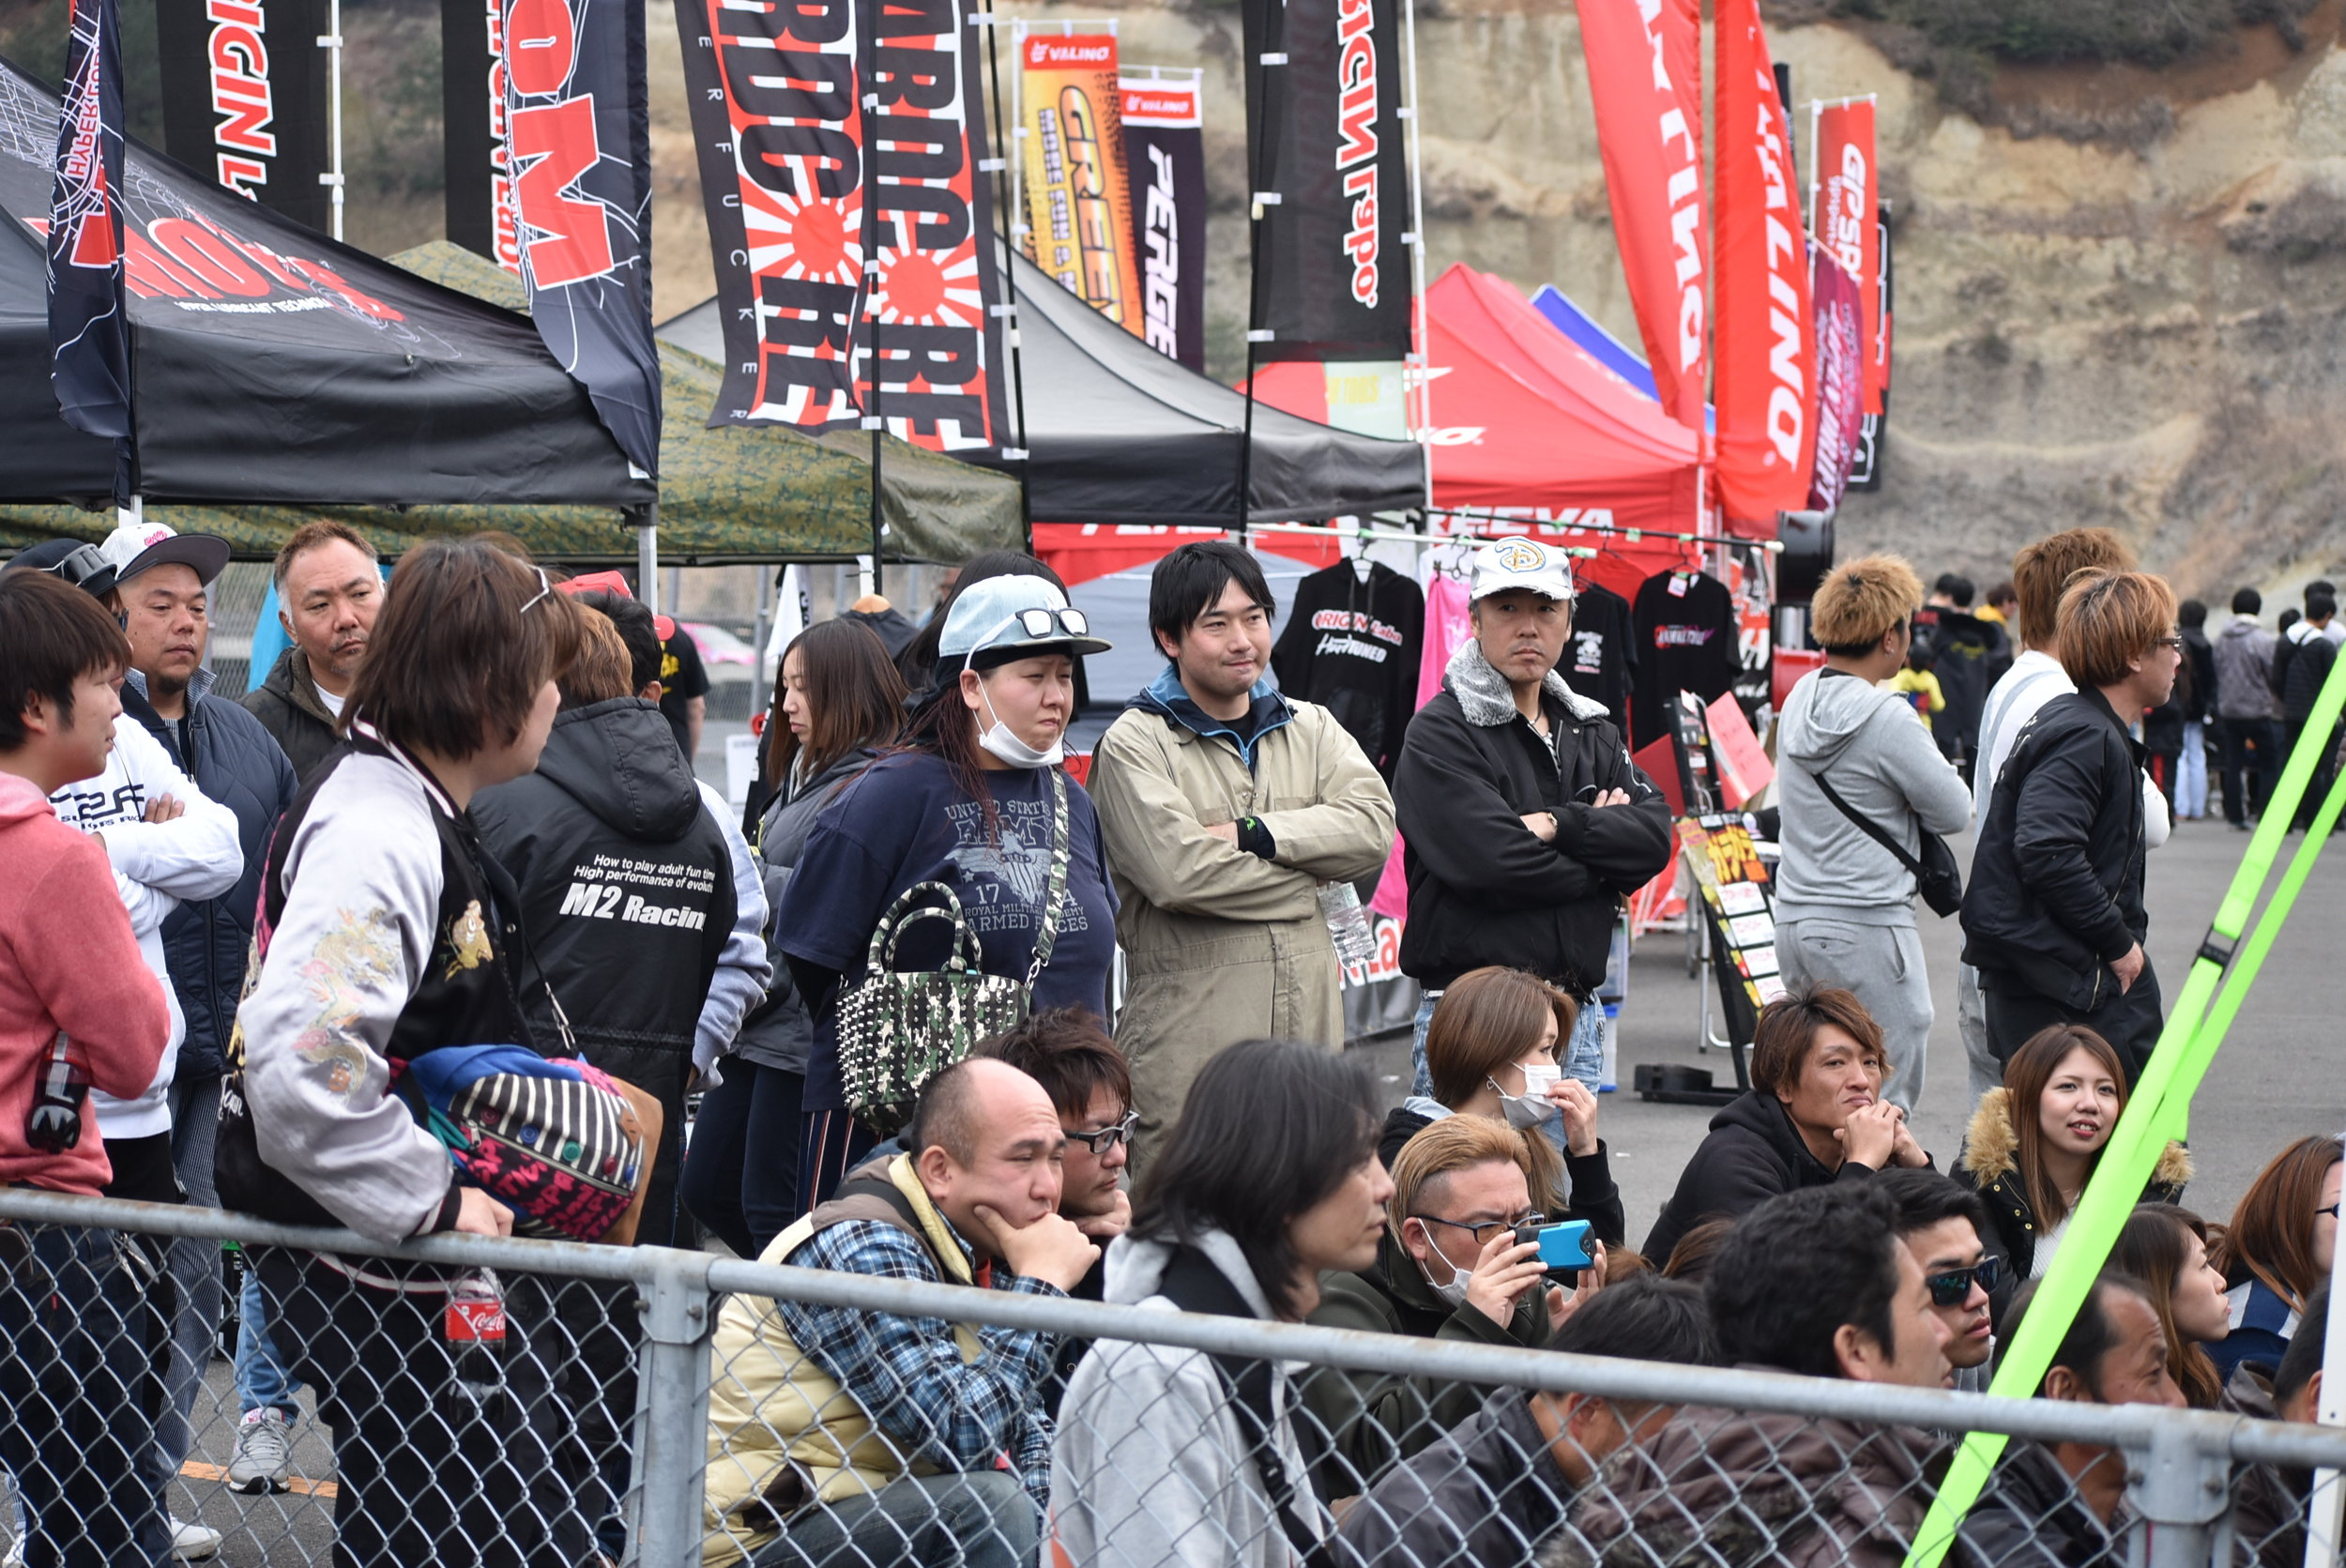 The crowds formed around the Live TV stream! The conversations stopped. It got extremely quiet, it was quite eery. This was the first battle of the BM CUP!